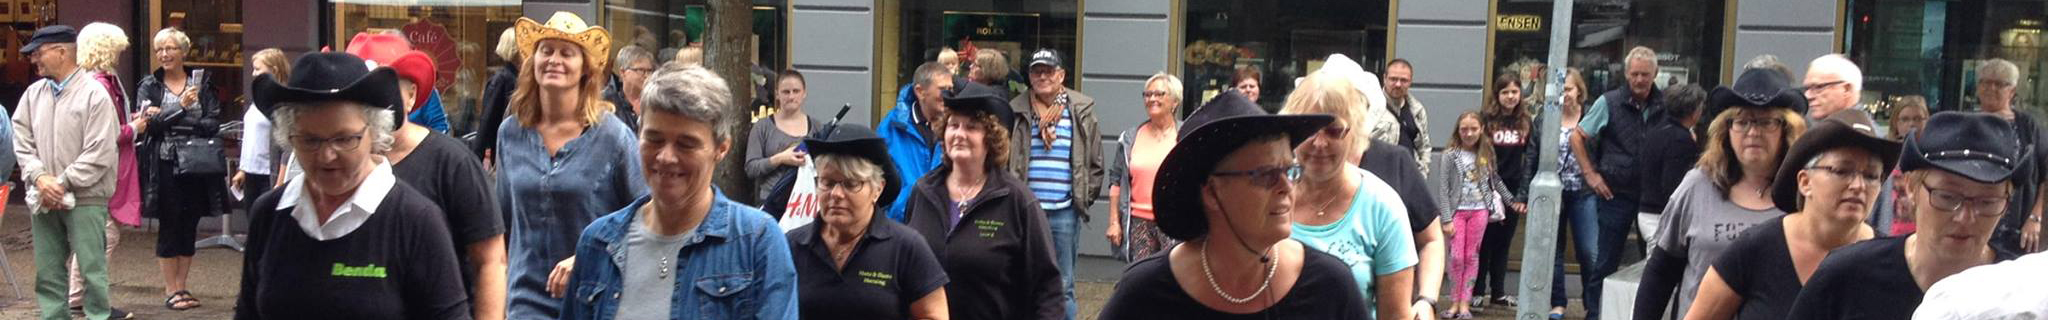 Hats and Boots Linedance Herning, Bornholmsvej 10, 7400 Herning